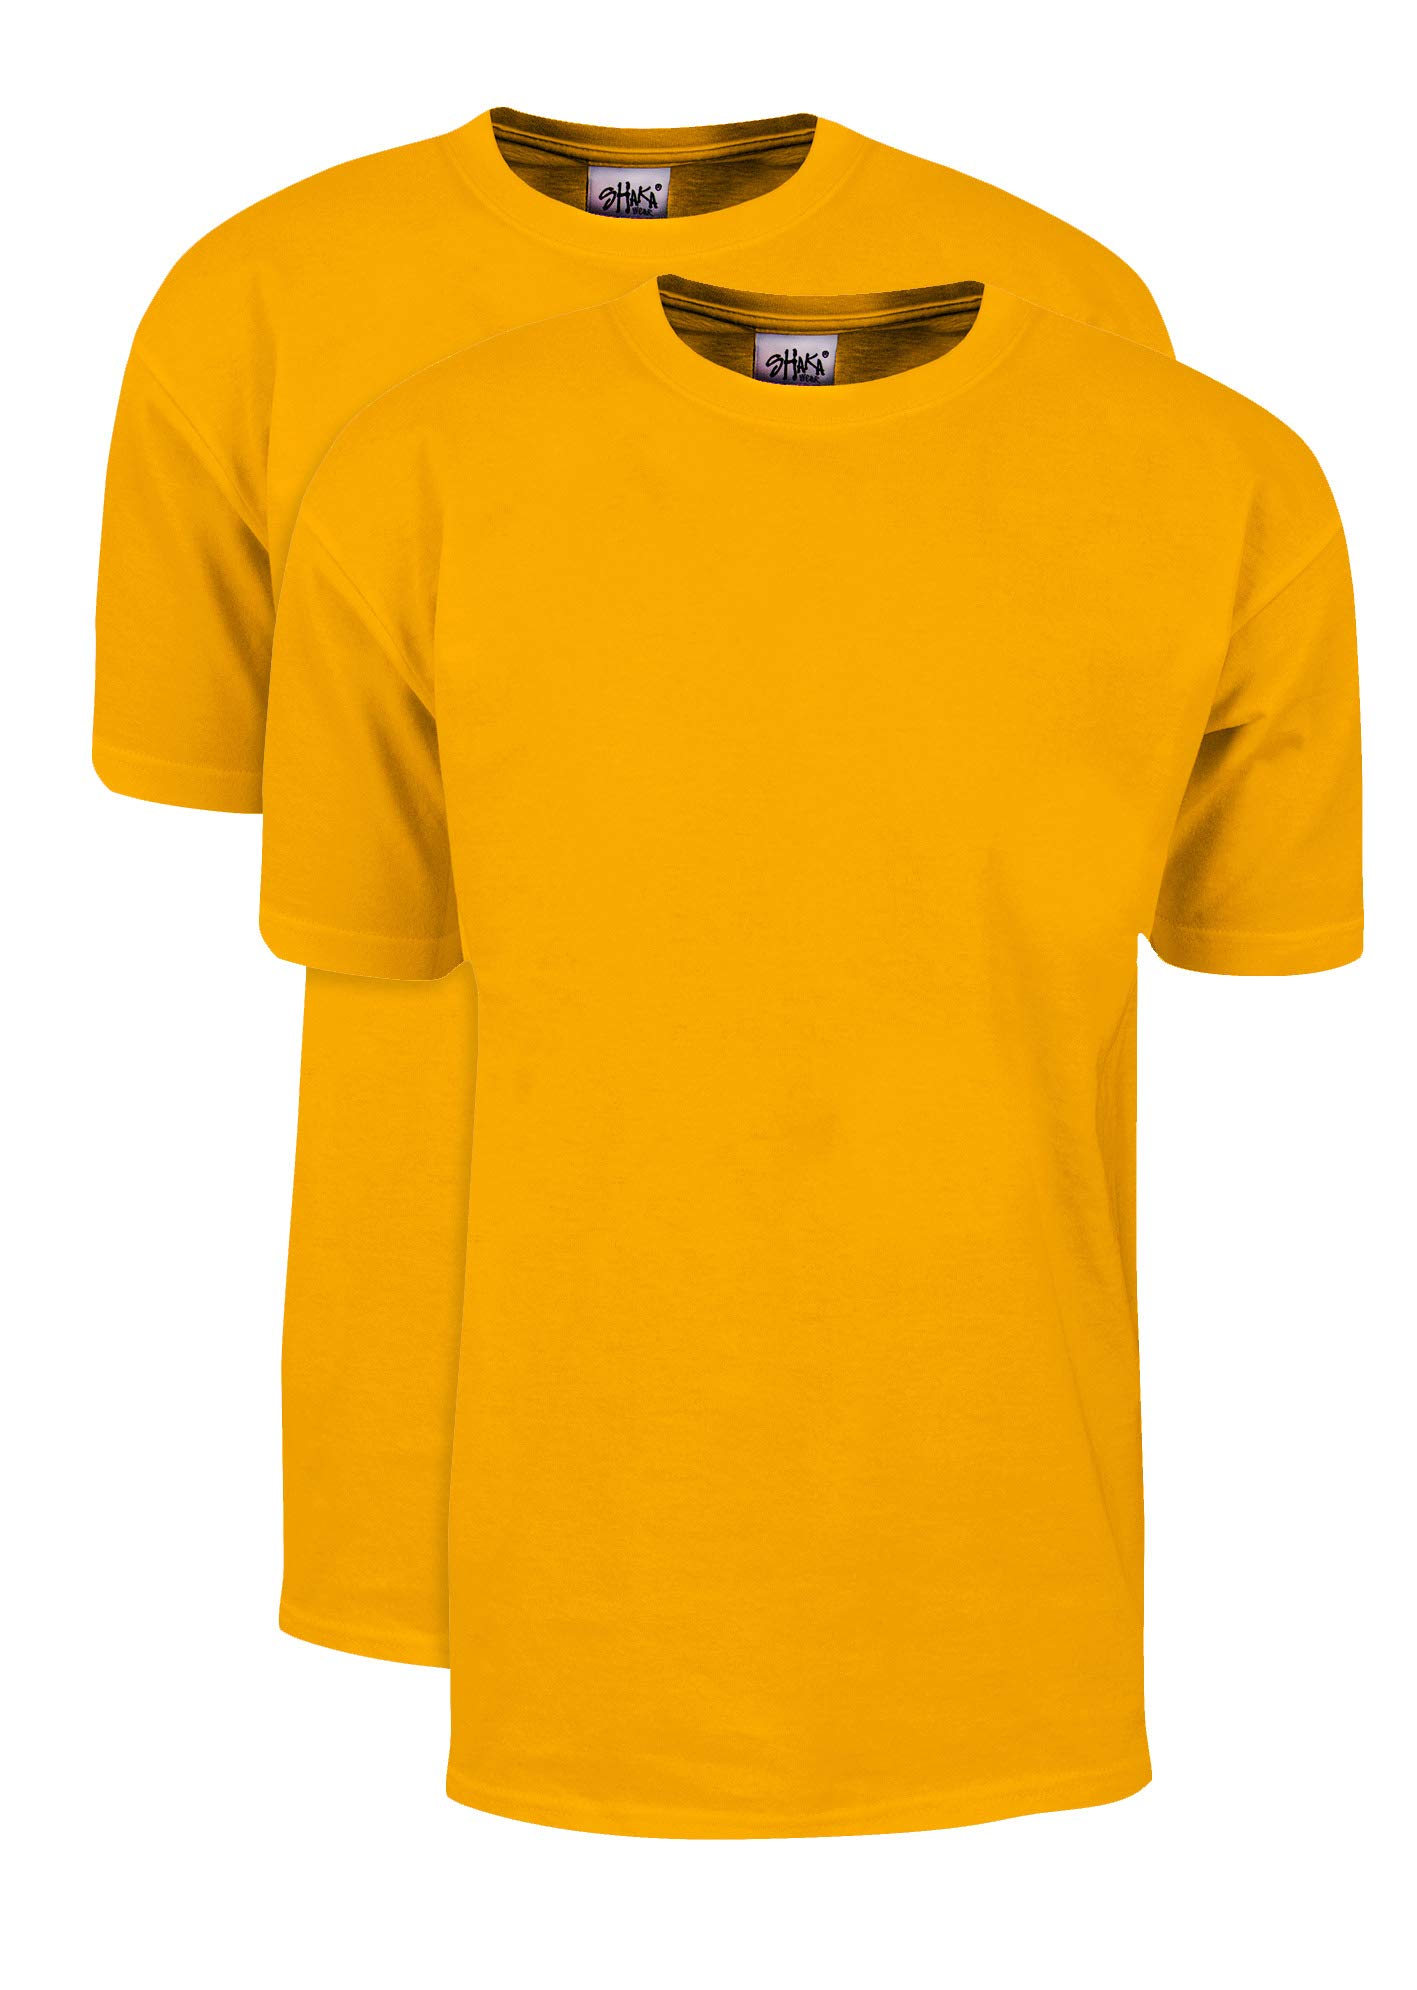 MHS11_L Max Heavy Weight Cotton Short Sleeve T-Shirt Gold L 2pk